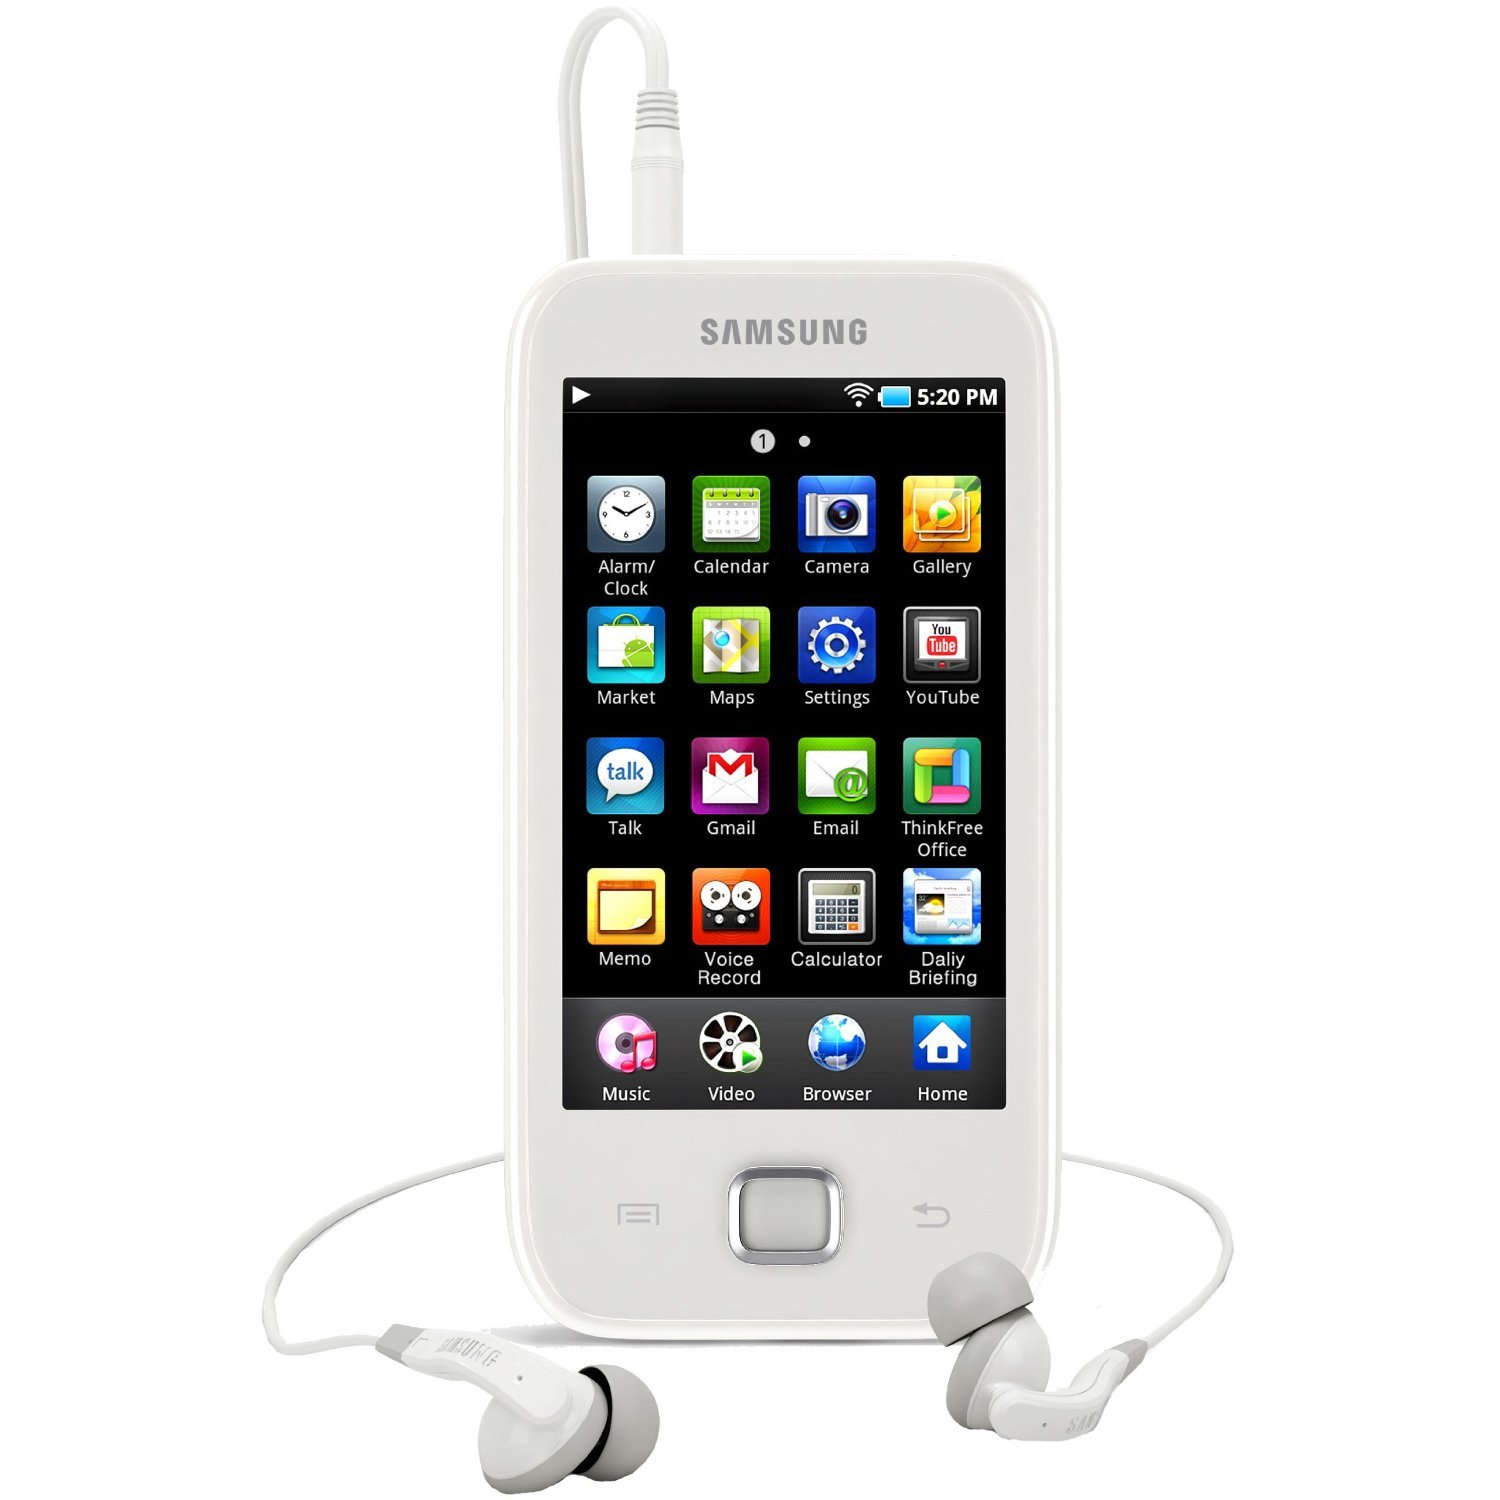 Samsung Galaxy Player, the non-radio music only version of the Galaxy